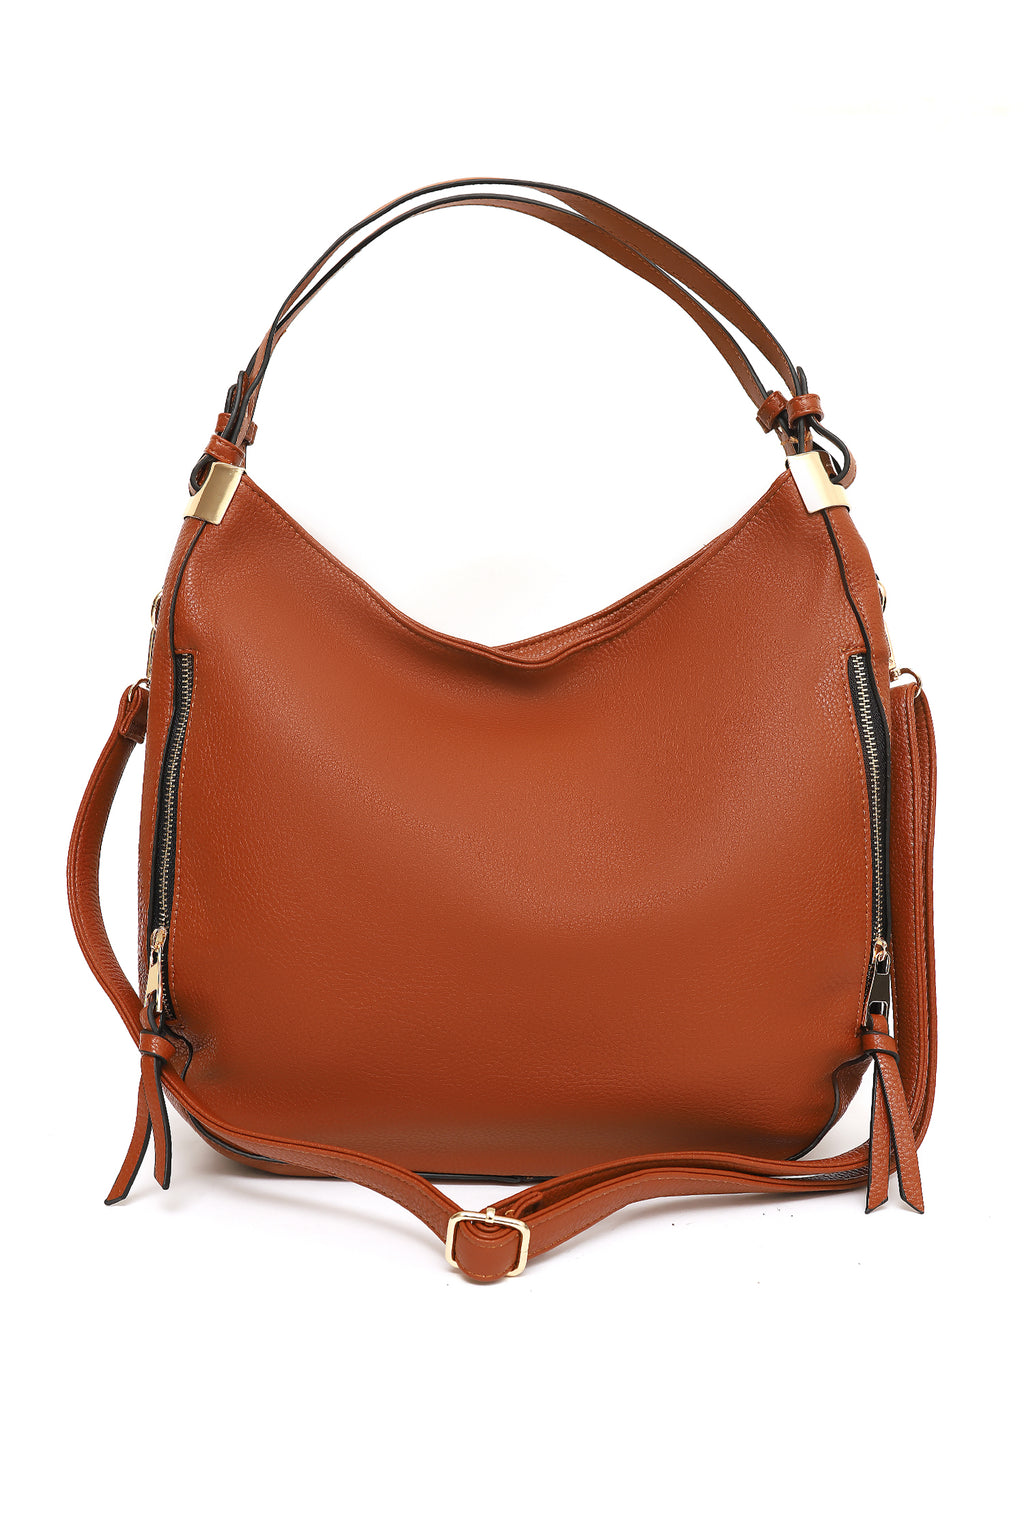 SOHO HANDBAG-BROWN